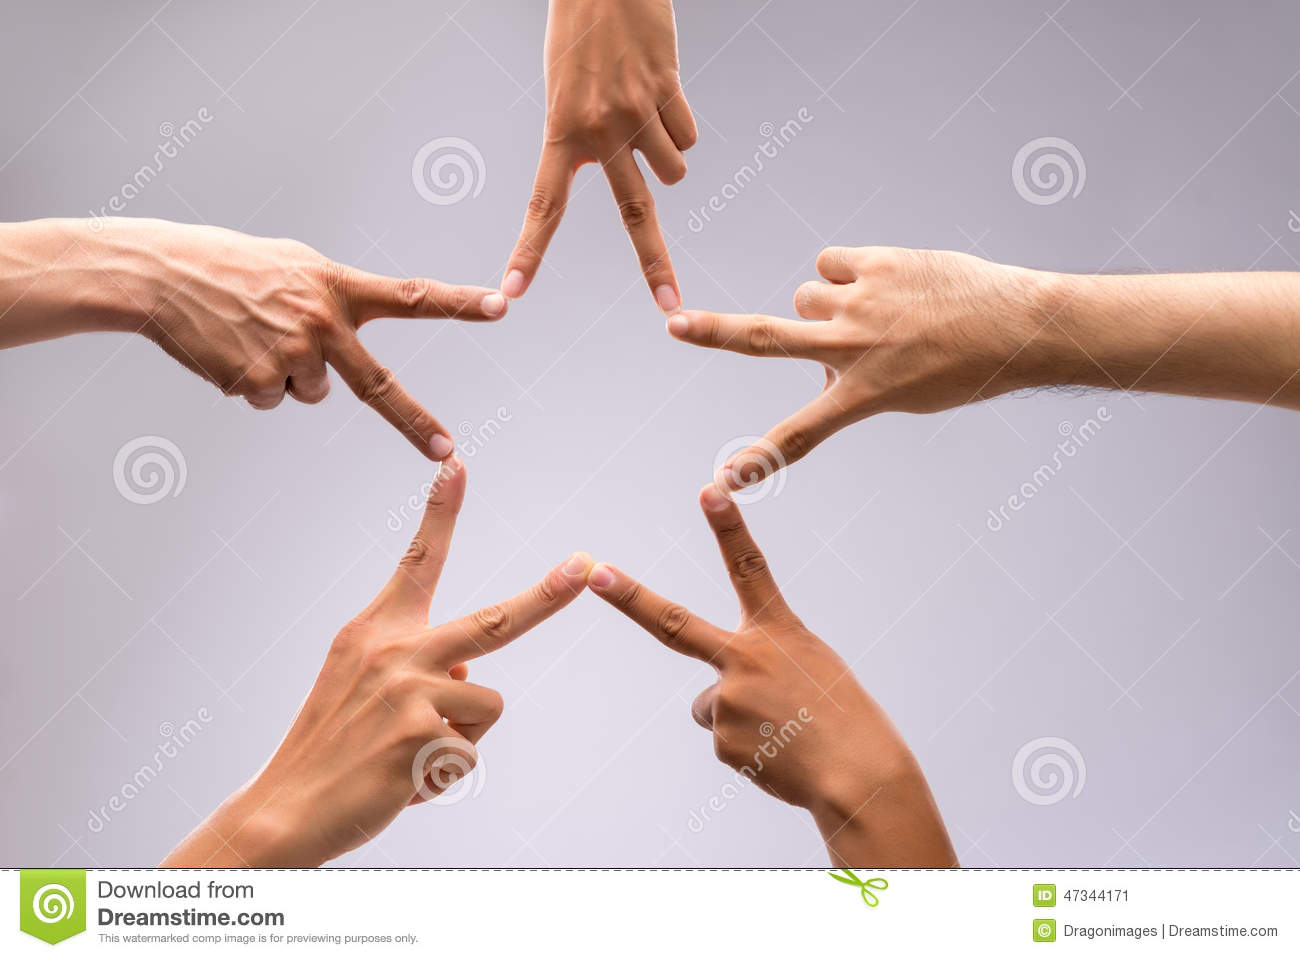 Forming star shape stock image. Image of care, network ...